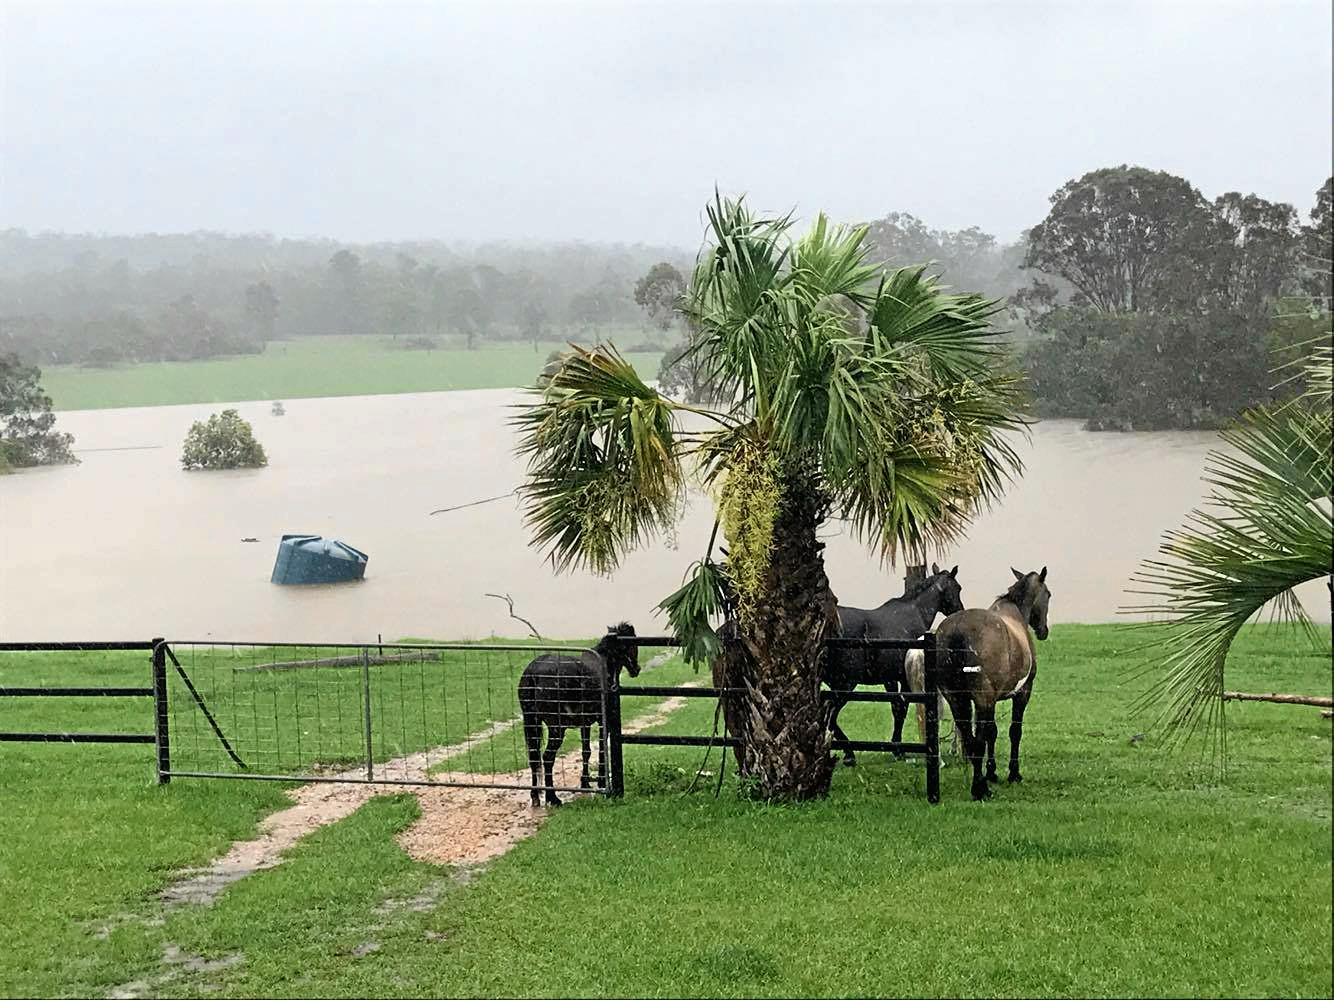 CATTLE LOST: Jess Keenan and her family watched as three of their cows floated away in floodwater at their Lowmead property.